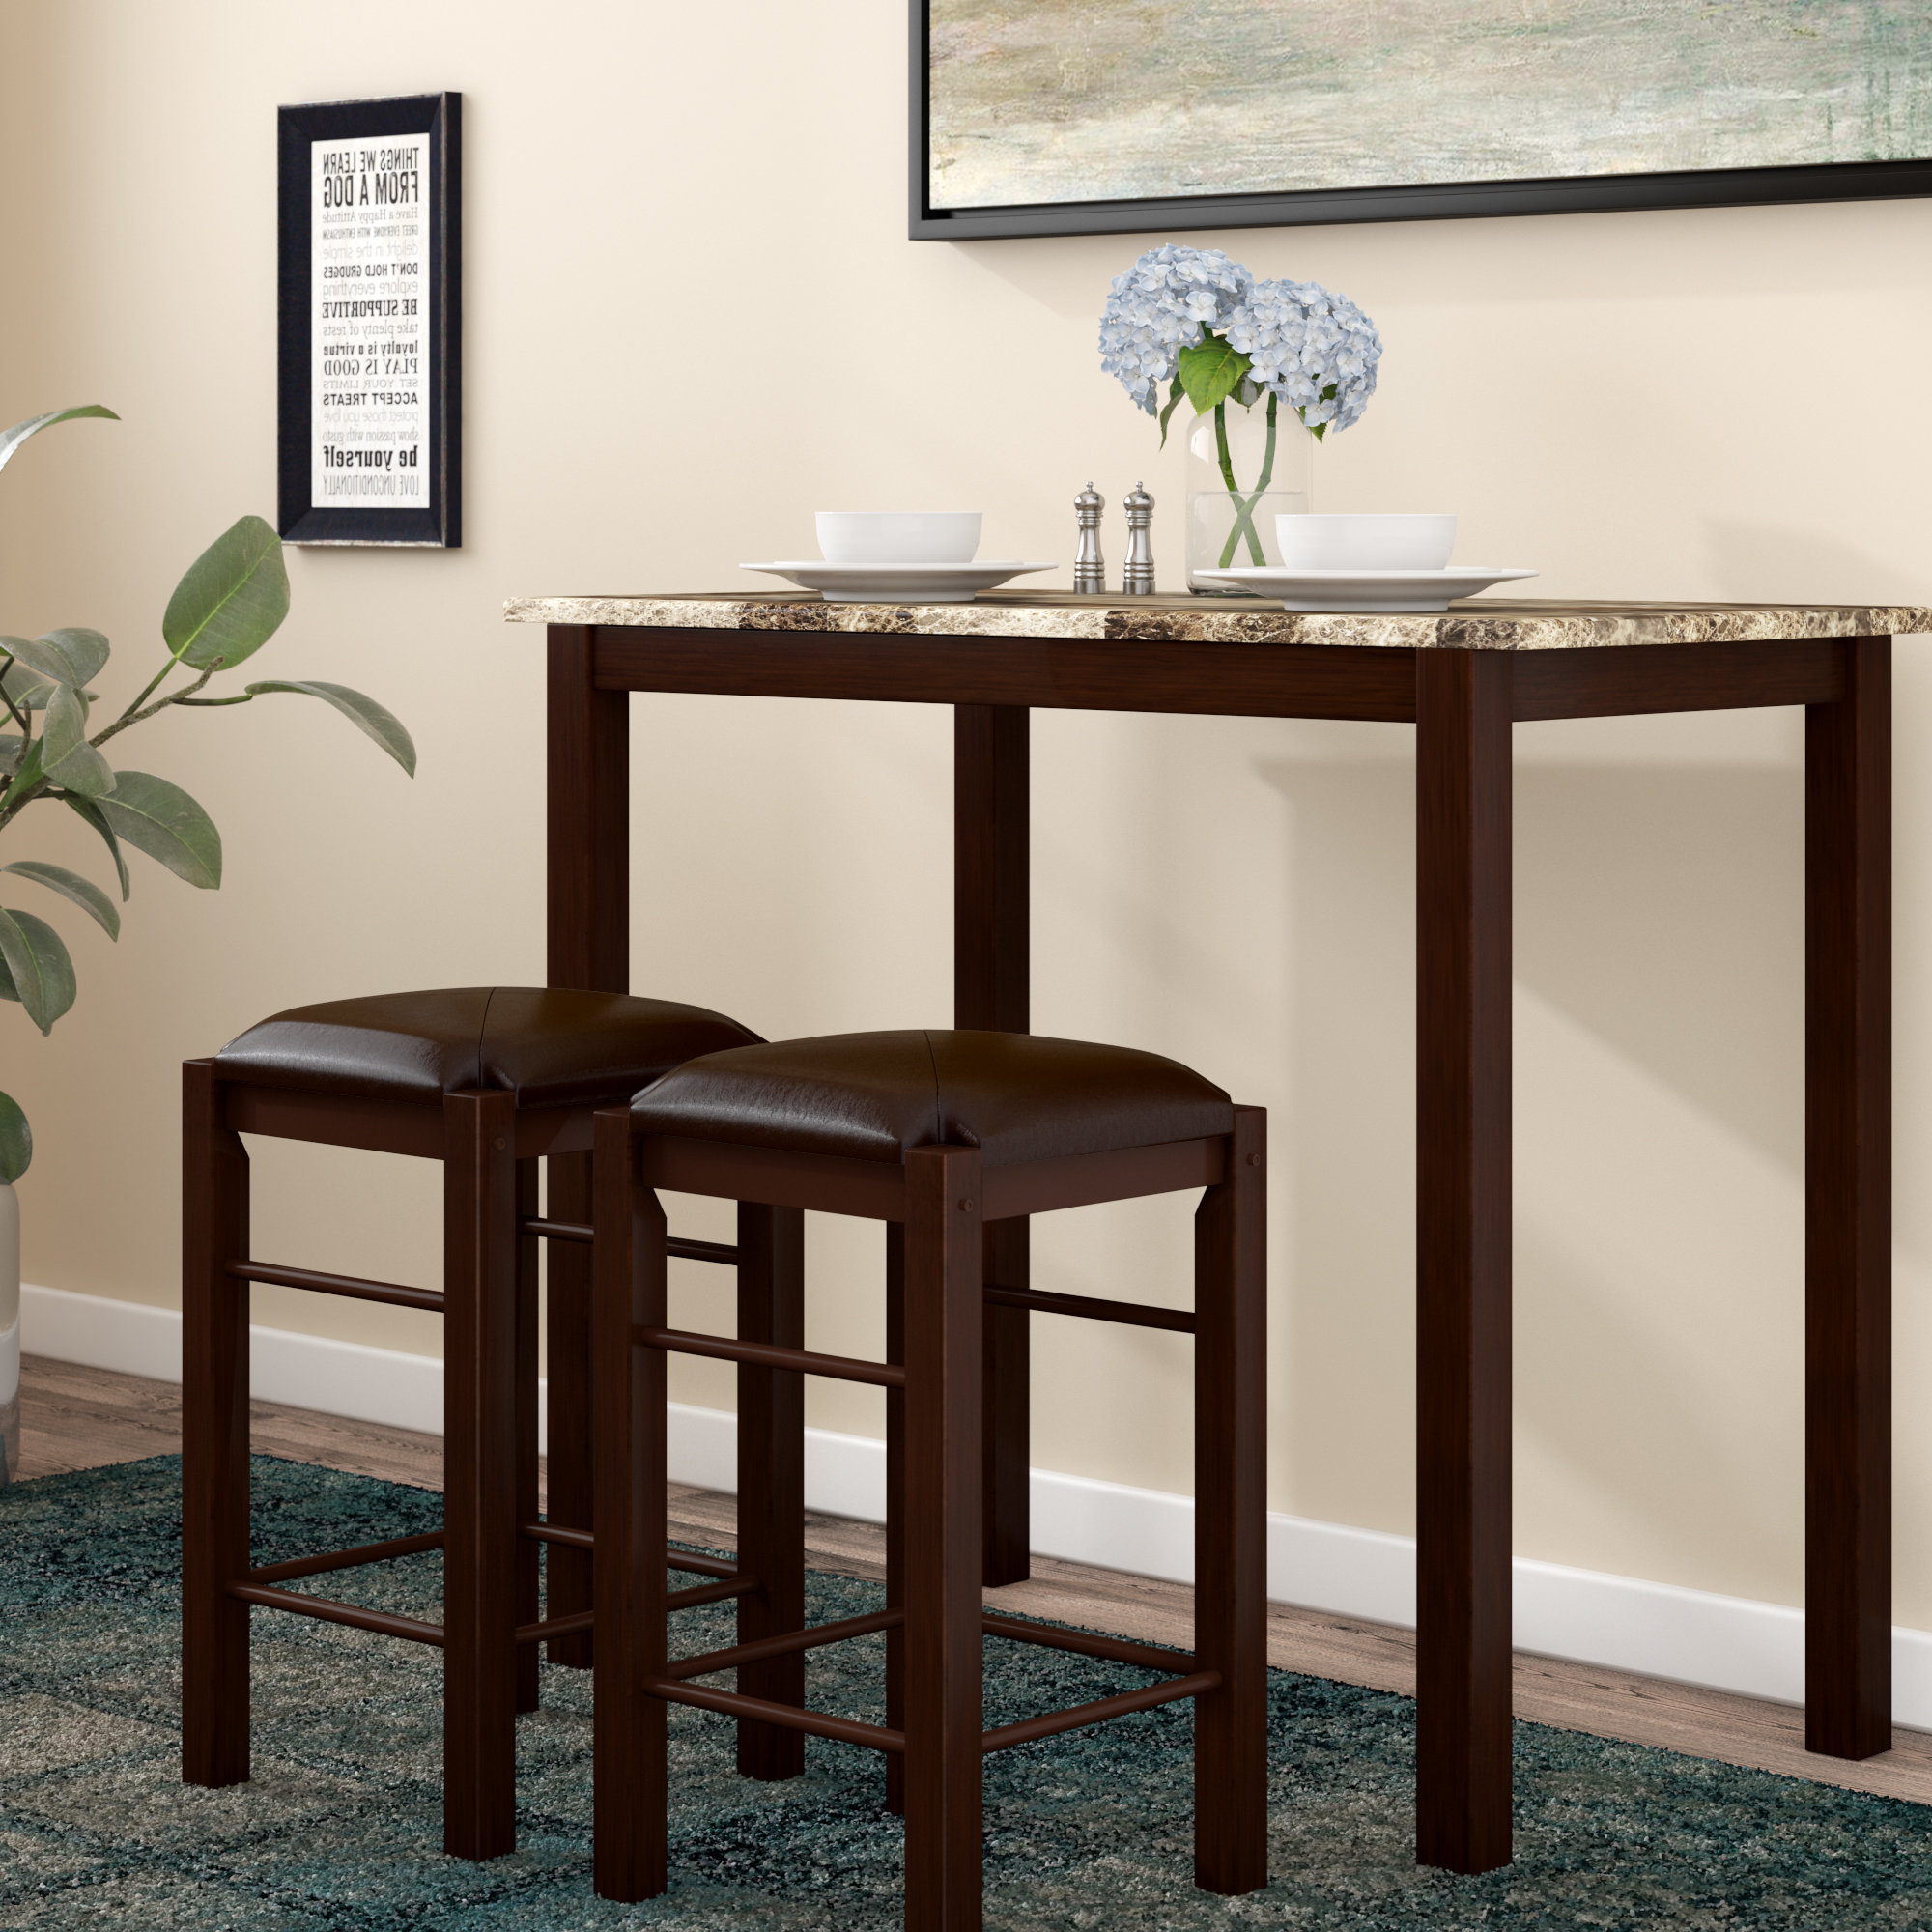 Poynter 3 Piece Drop Leaf Dining Sets Intended For Recent Winston Porter Penelope 3 Piece Counter Height Wood Dining Set (View 11 of 25)